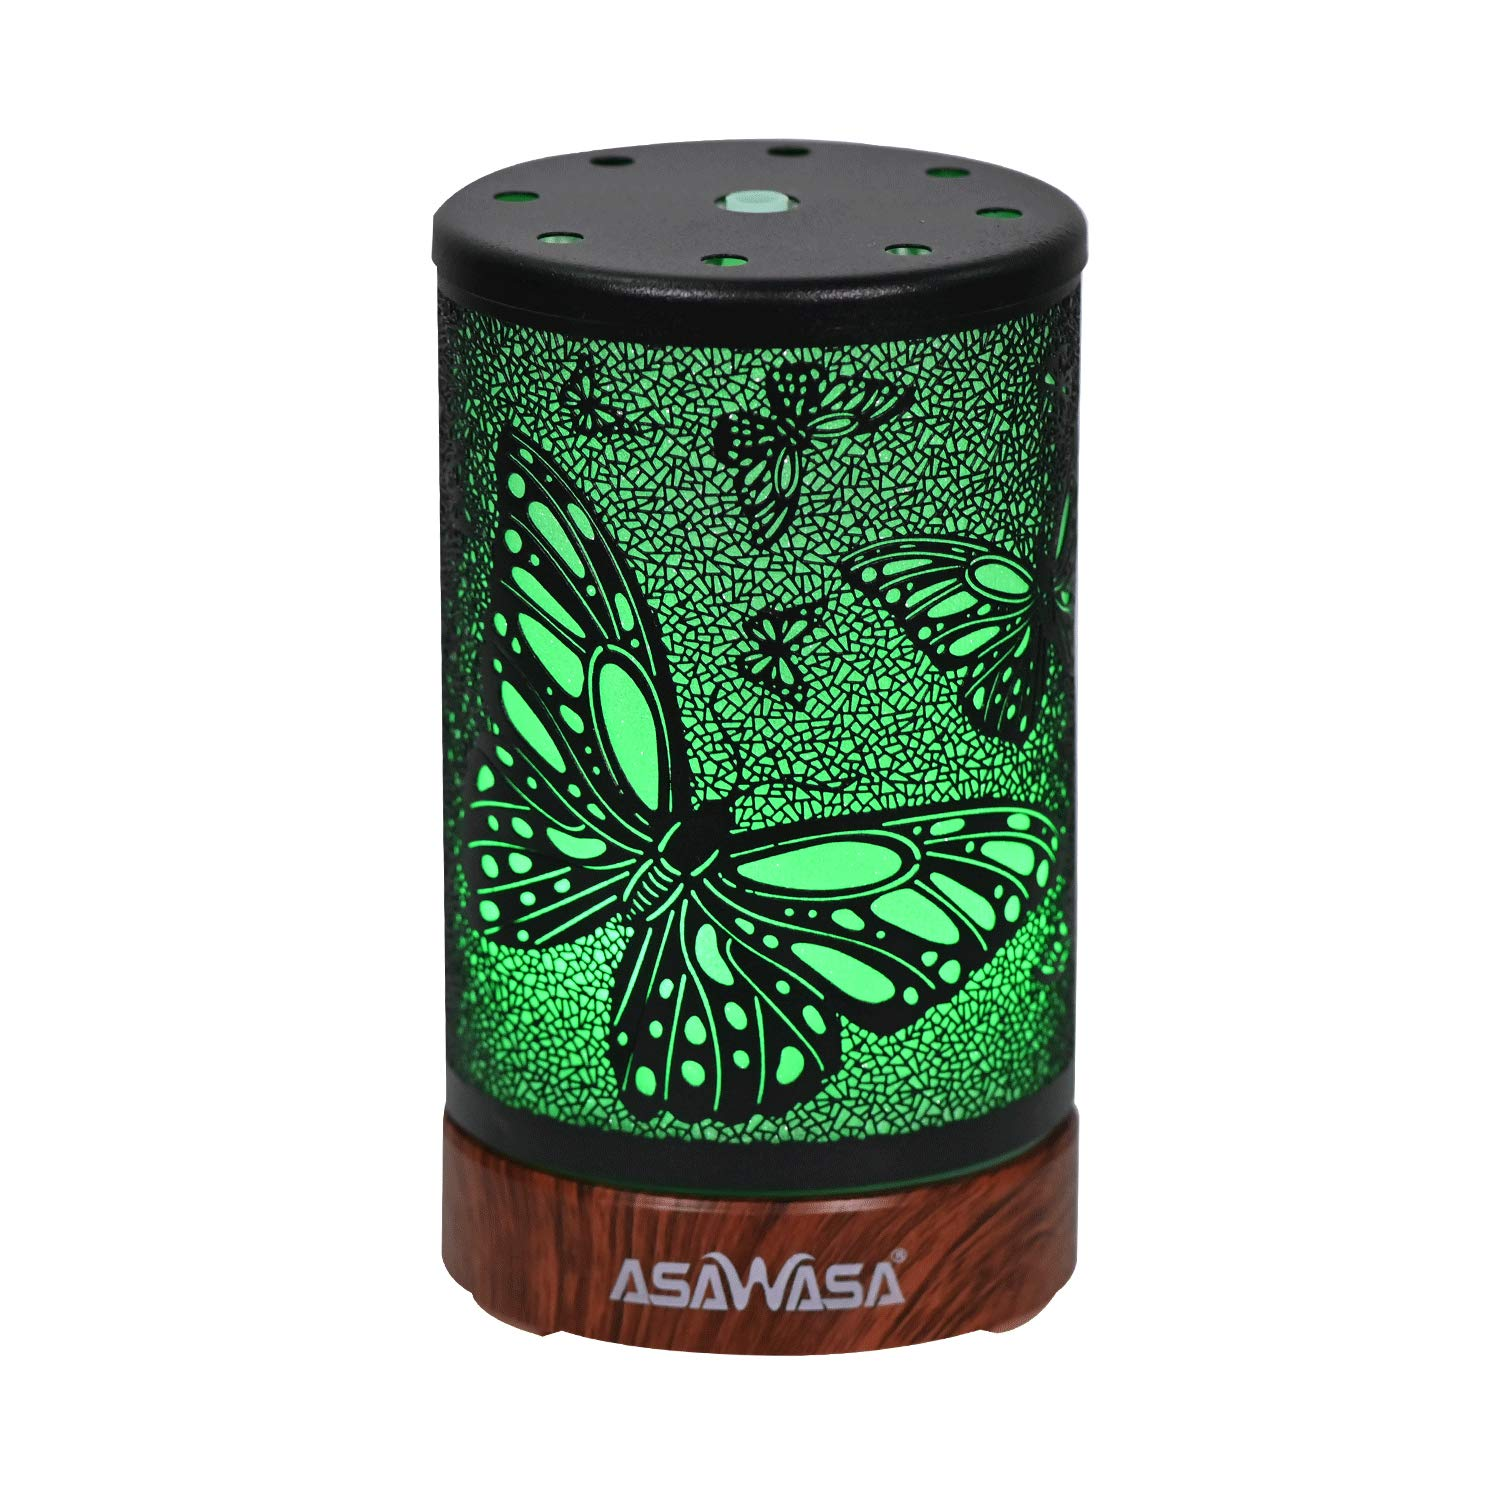 Essential Oil Diffuser ASAWASA Metal Aromatherapy Ultrasonic Cool Mist Aroma Humidifier with Waterless Auto Shut-Off,7 Colors Changed LED Night Lamp for Home bedroom Office spa Yoga 100ml (Butterfly)